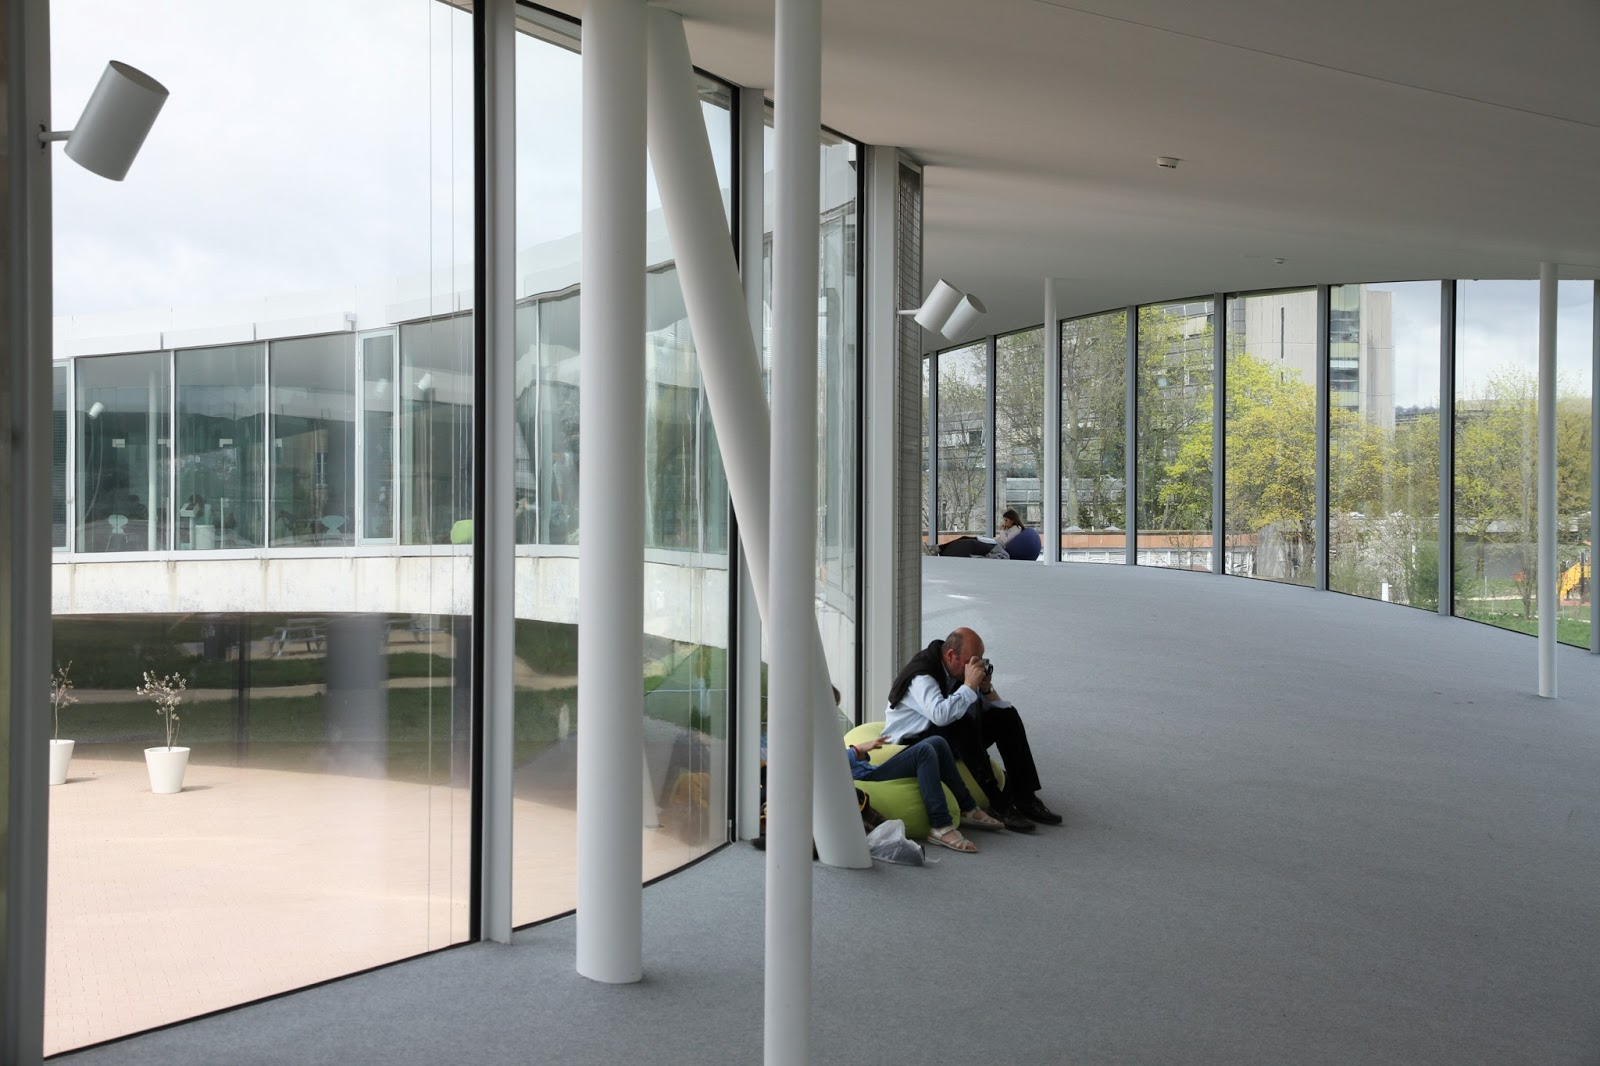 rolex learning center designed by sanaa in lausanne